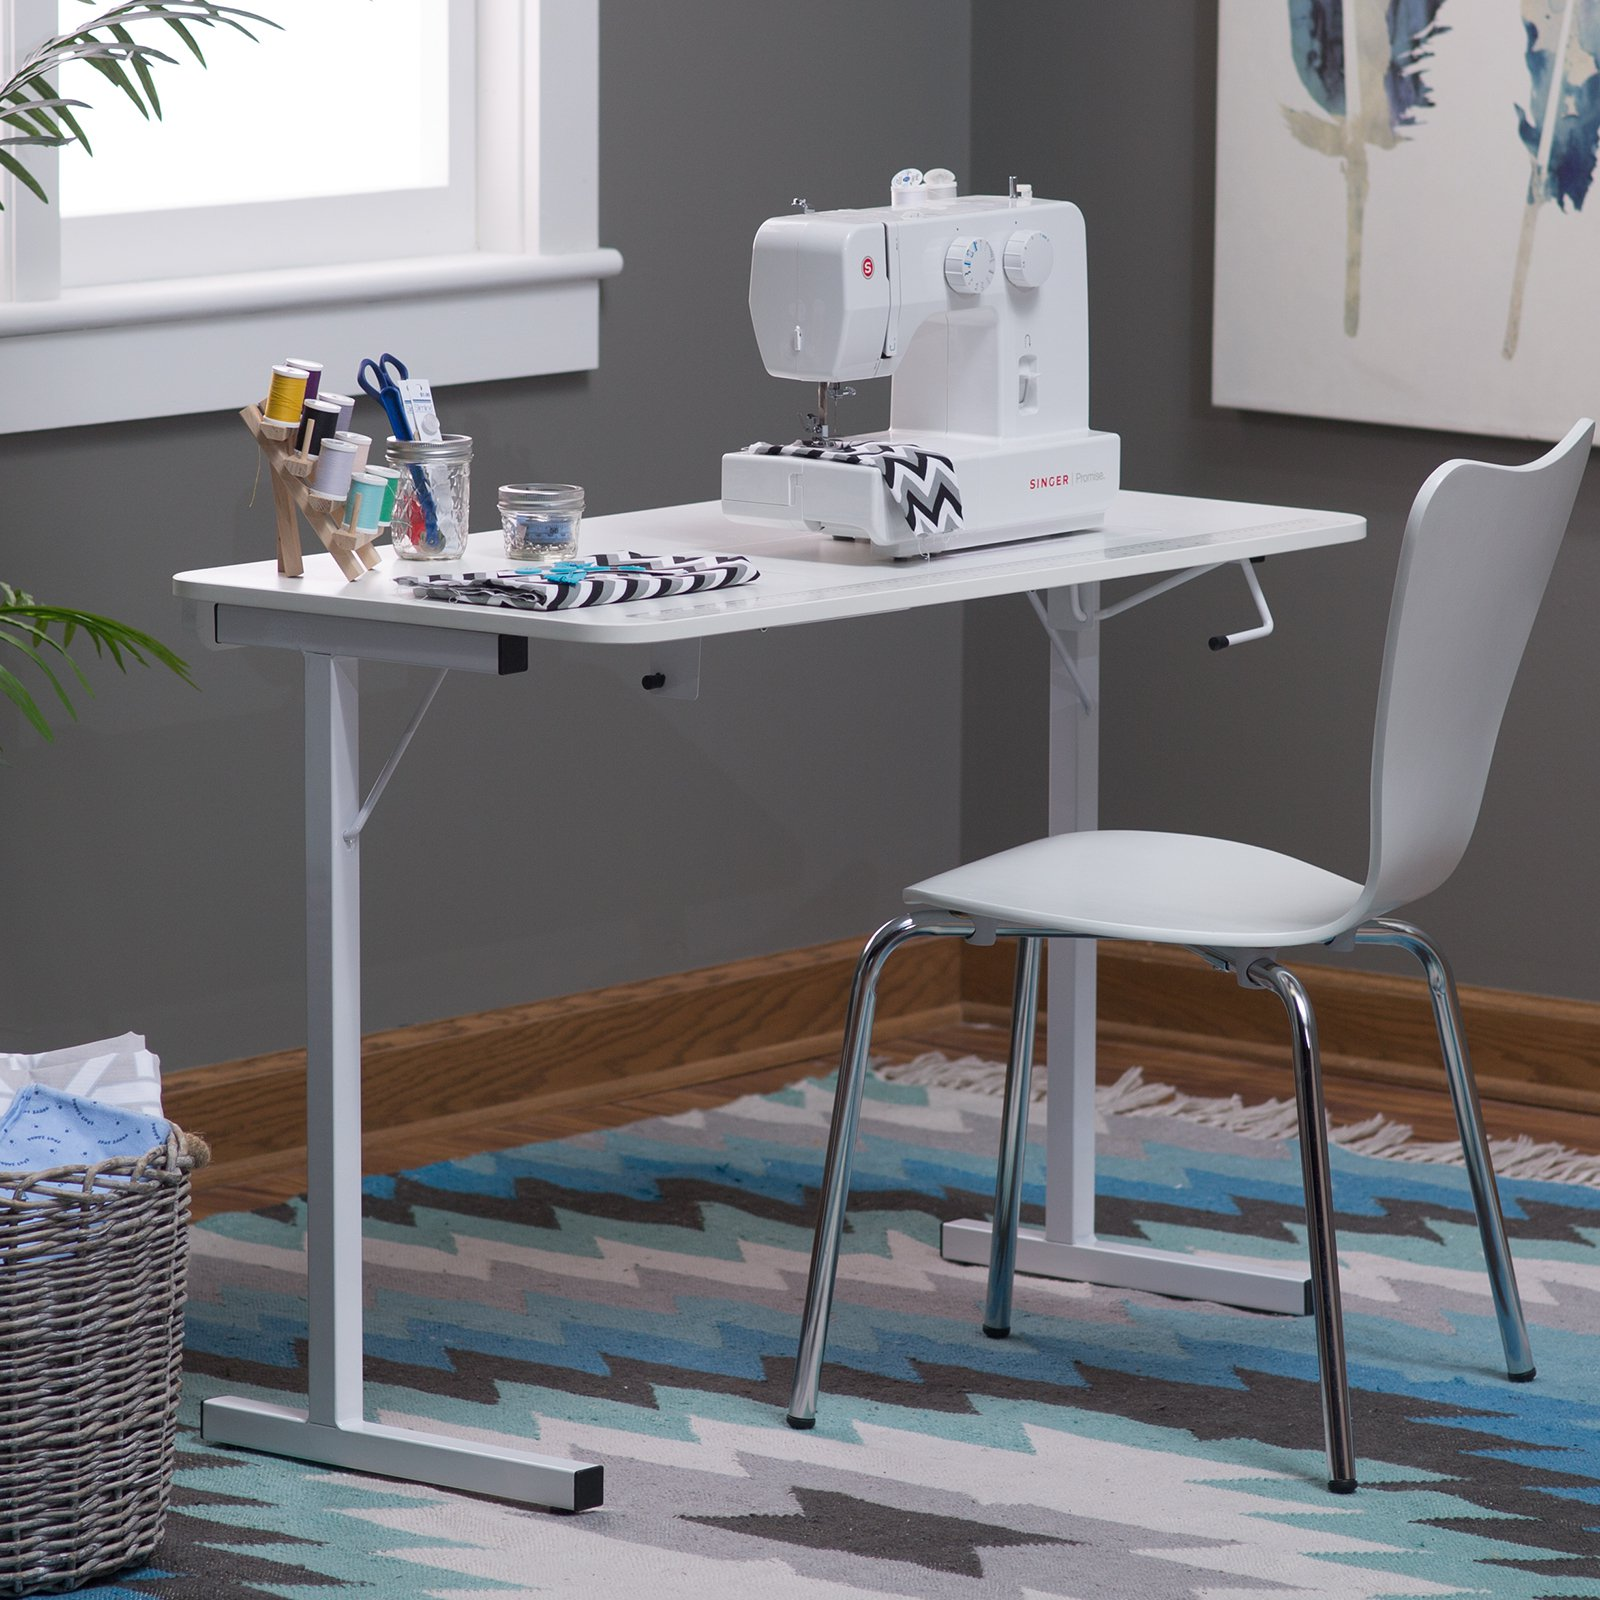 Arrow 601   Gidget Sewing Table   Walmart.com